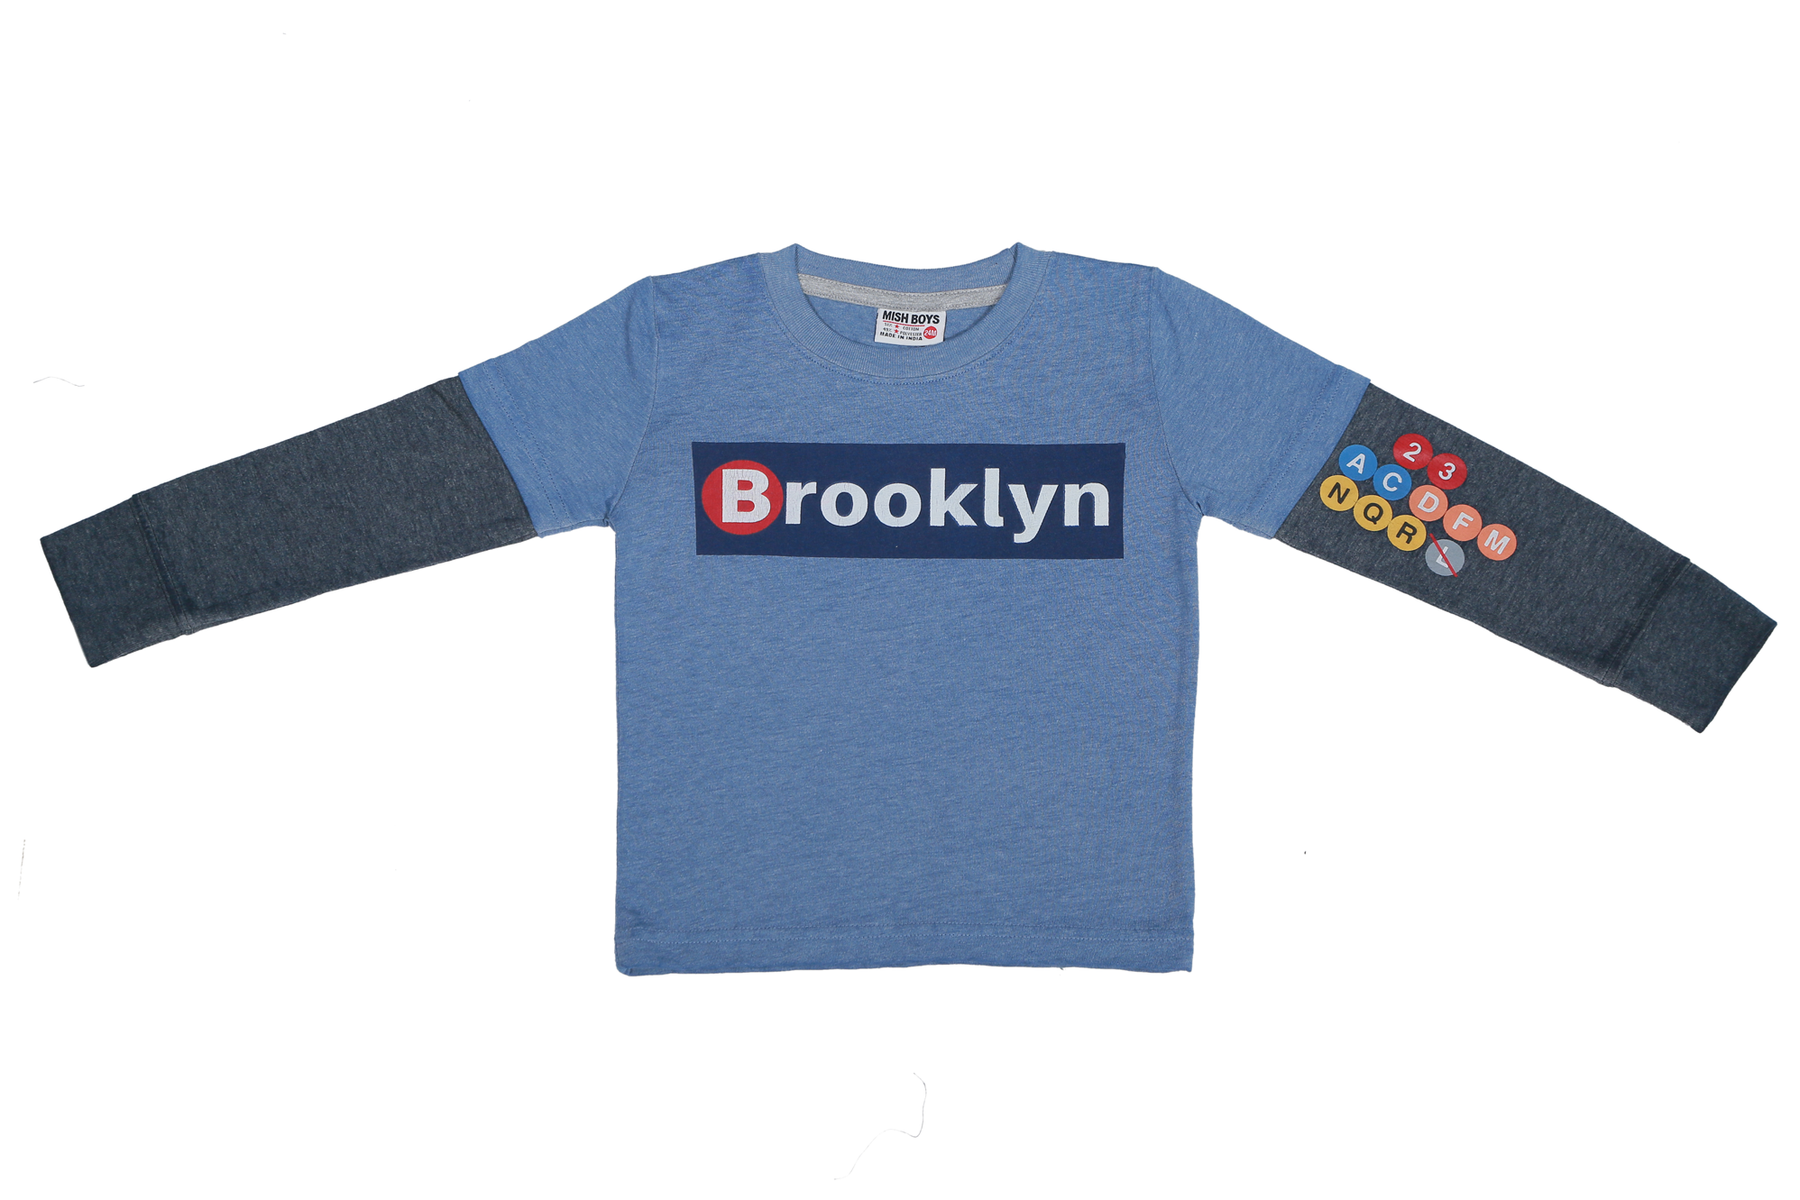 Long Sleeve 2Fer Shirt w Thermal Sleeves - Brooklyn (available in Size 3M and 9M)